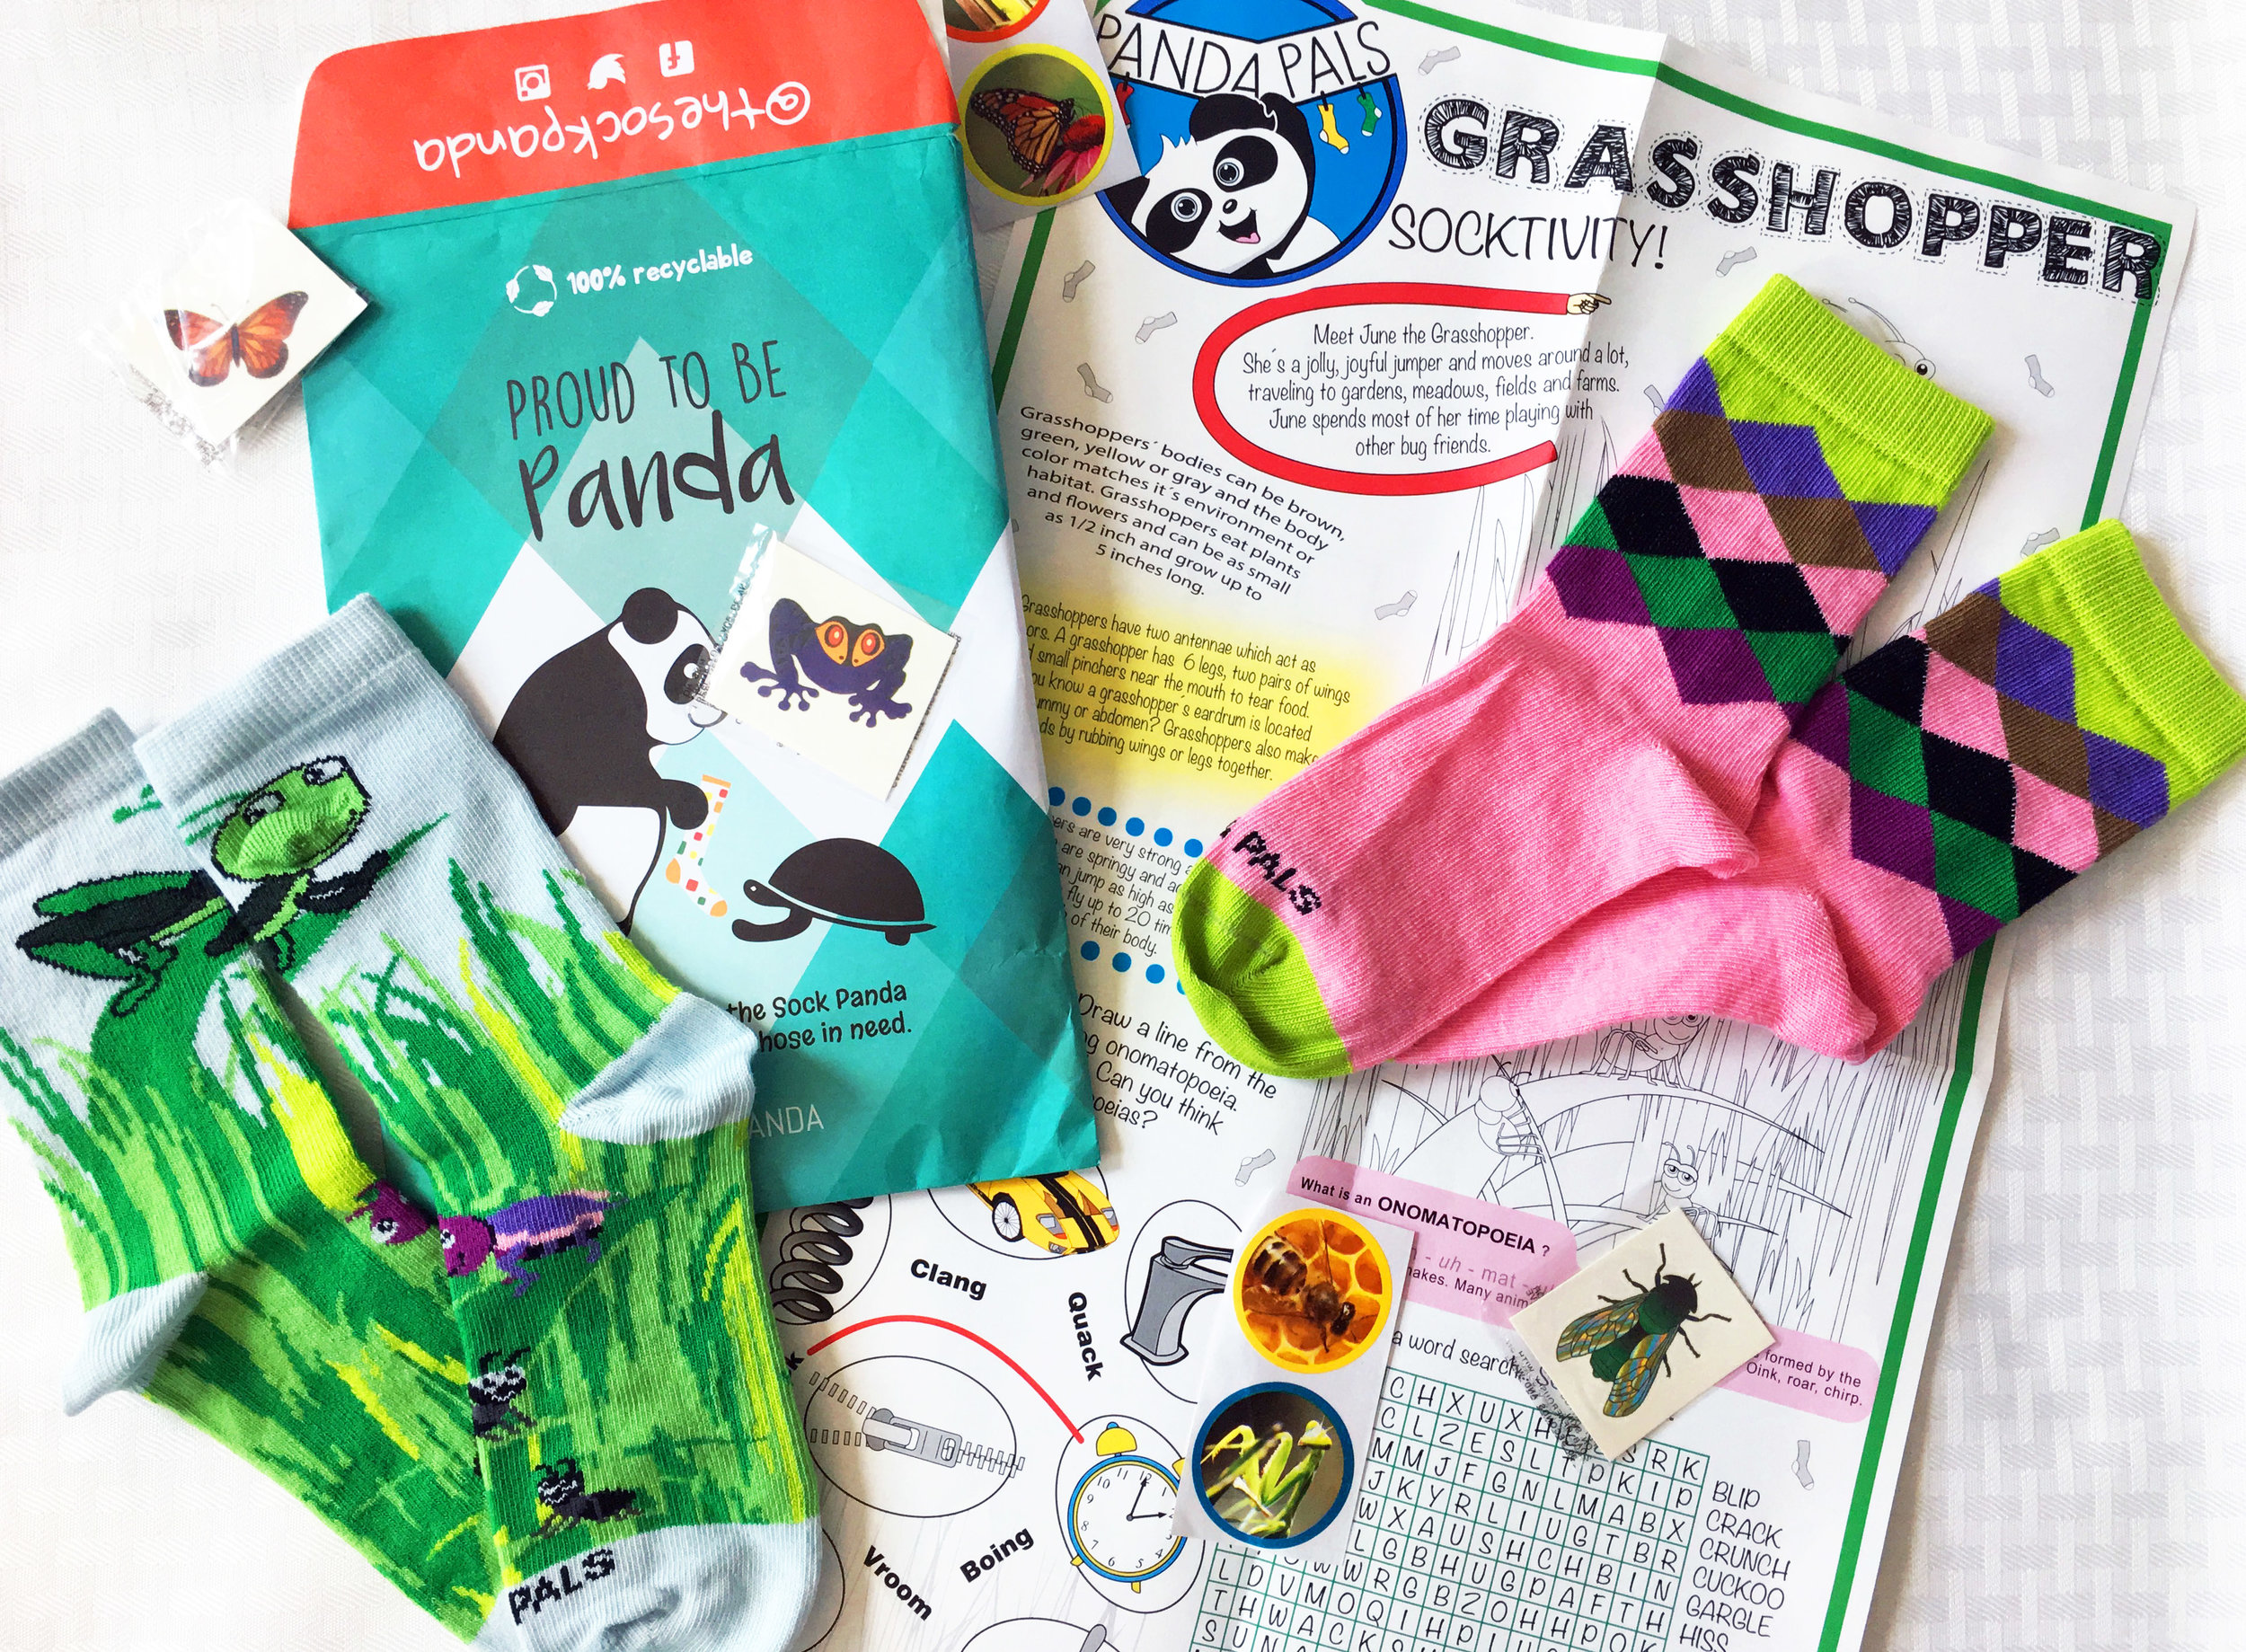 Sock Panda - Panda Pals (Play and Learn Socktivity)  featuring June the Grasshopper. Photo Credit: The Sock Review